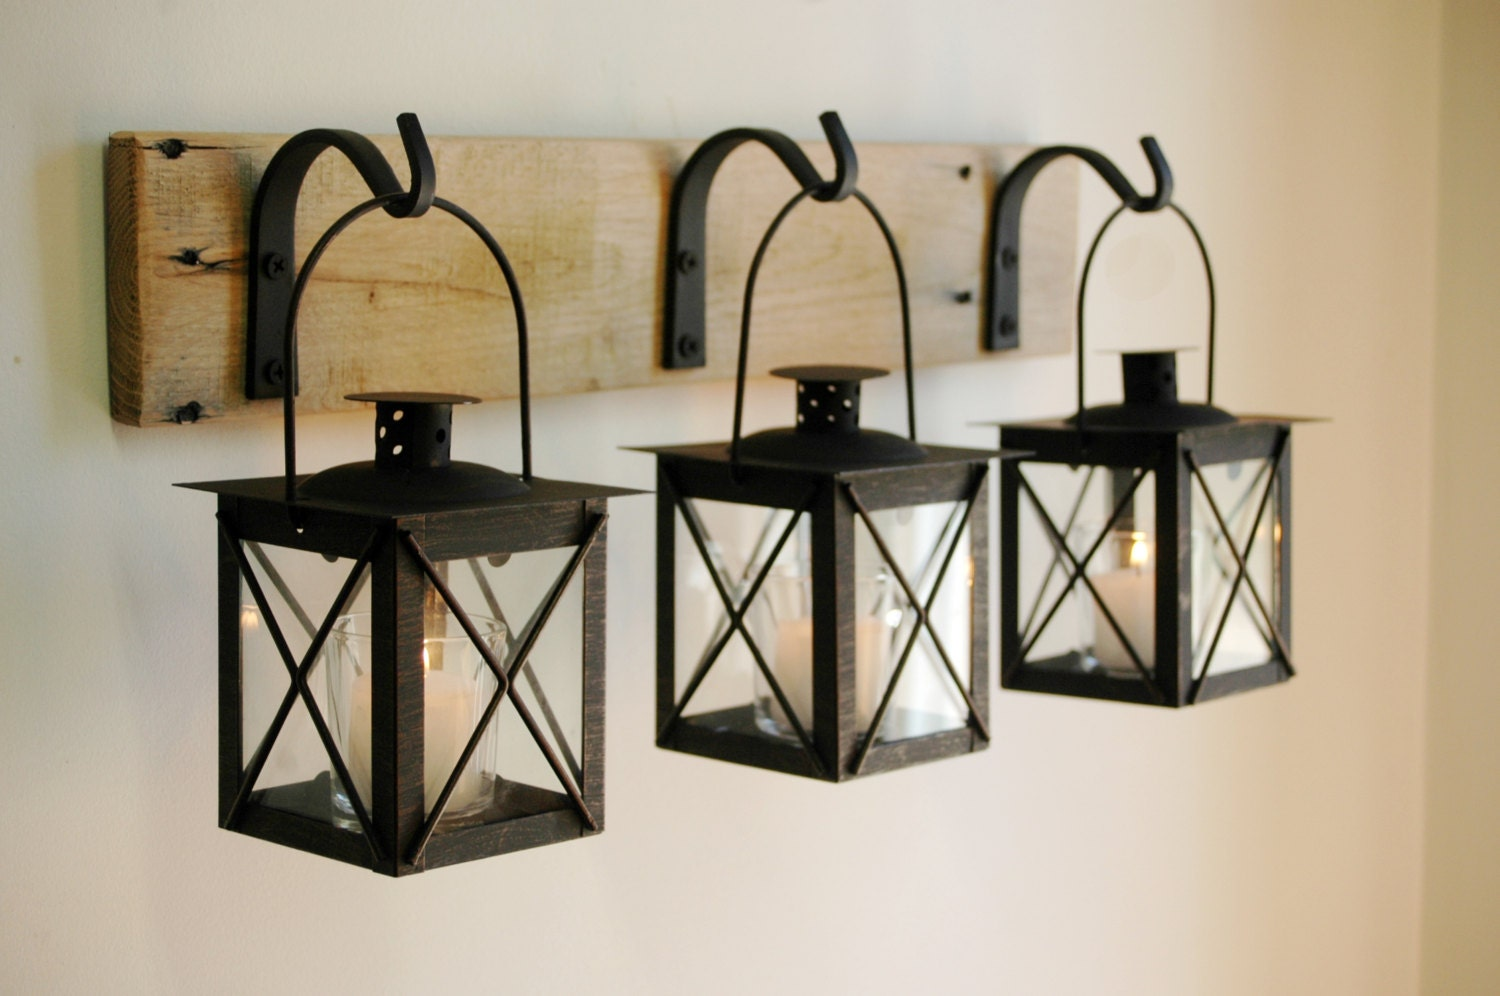 Home Decorative Item Model Black Lantern Trio Wall Decor Home Decor Rustic Decor